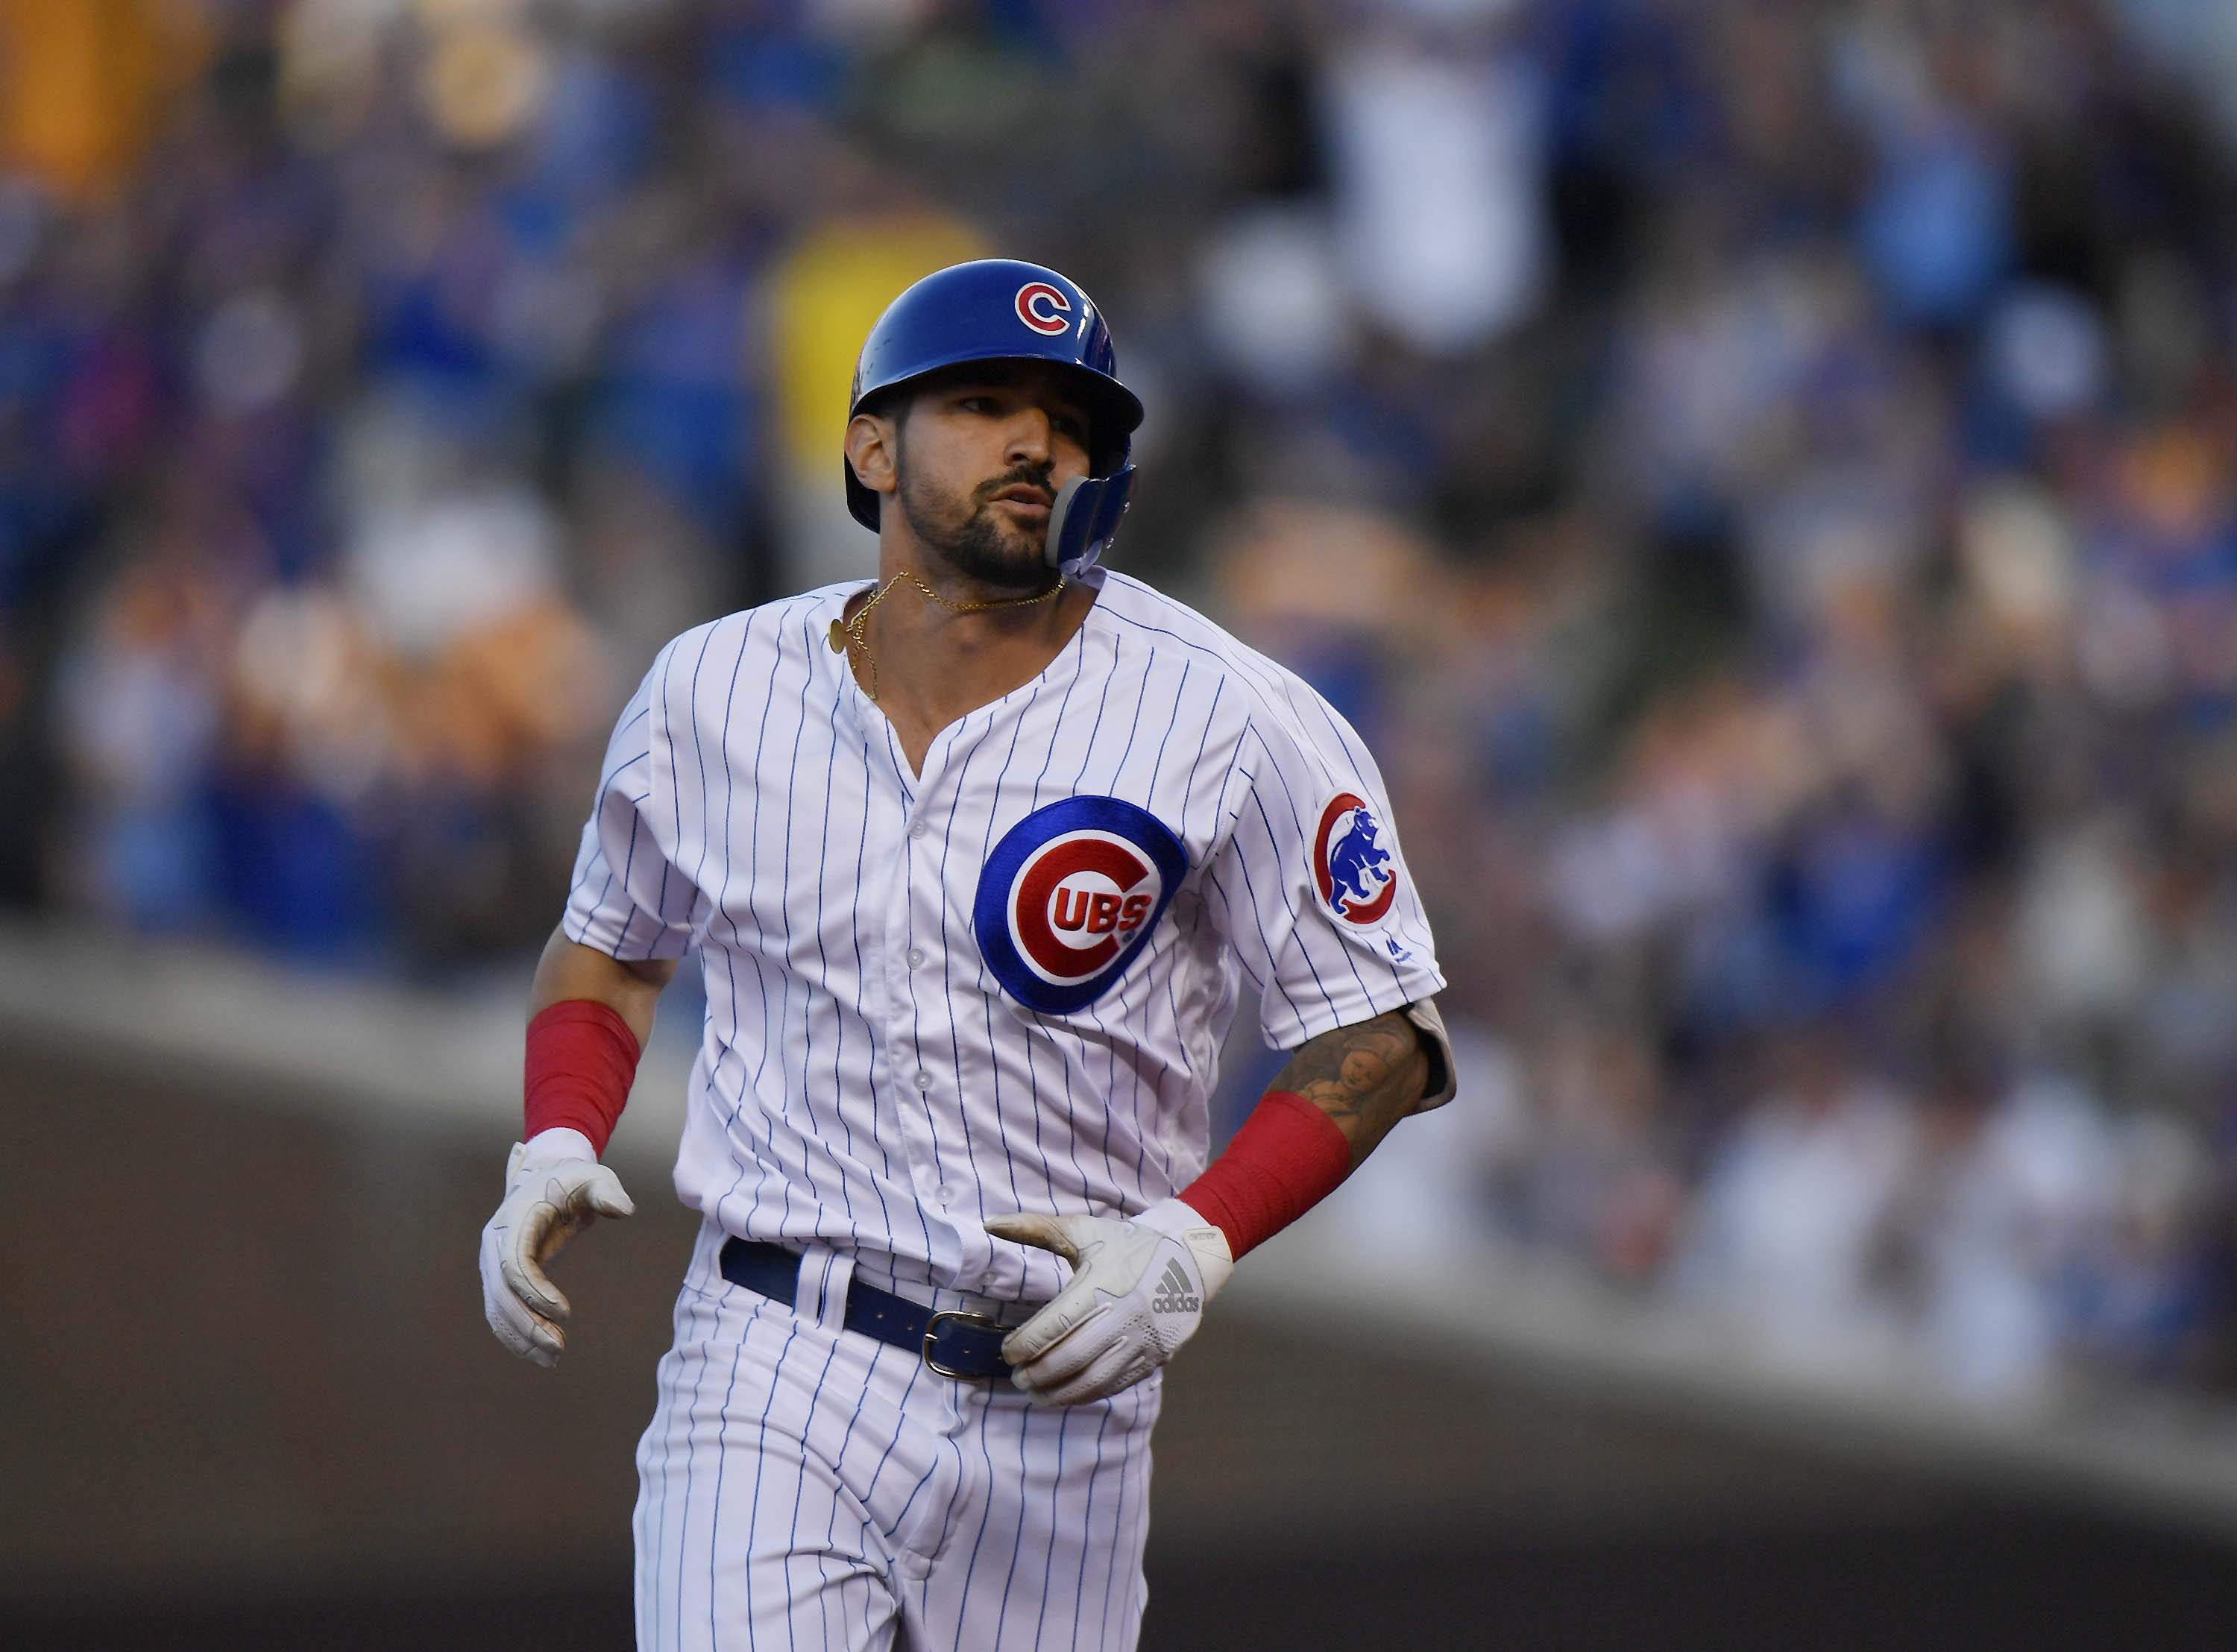 Nicholas Castellanos has six game hitting streak since joining the Chicago Cubs at the trade deadline